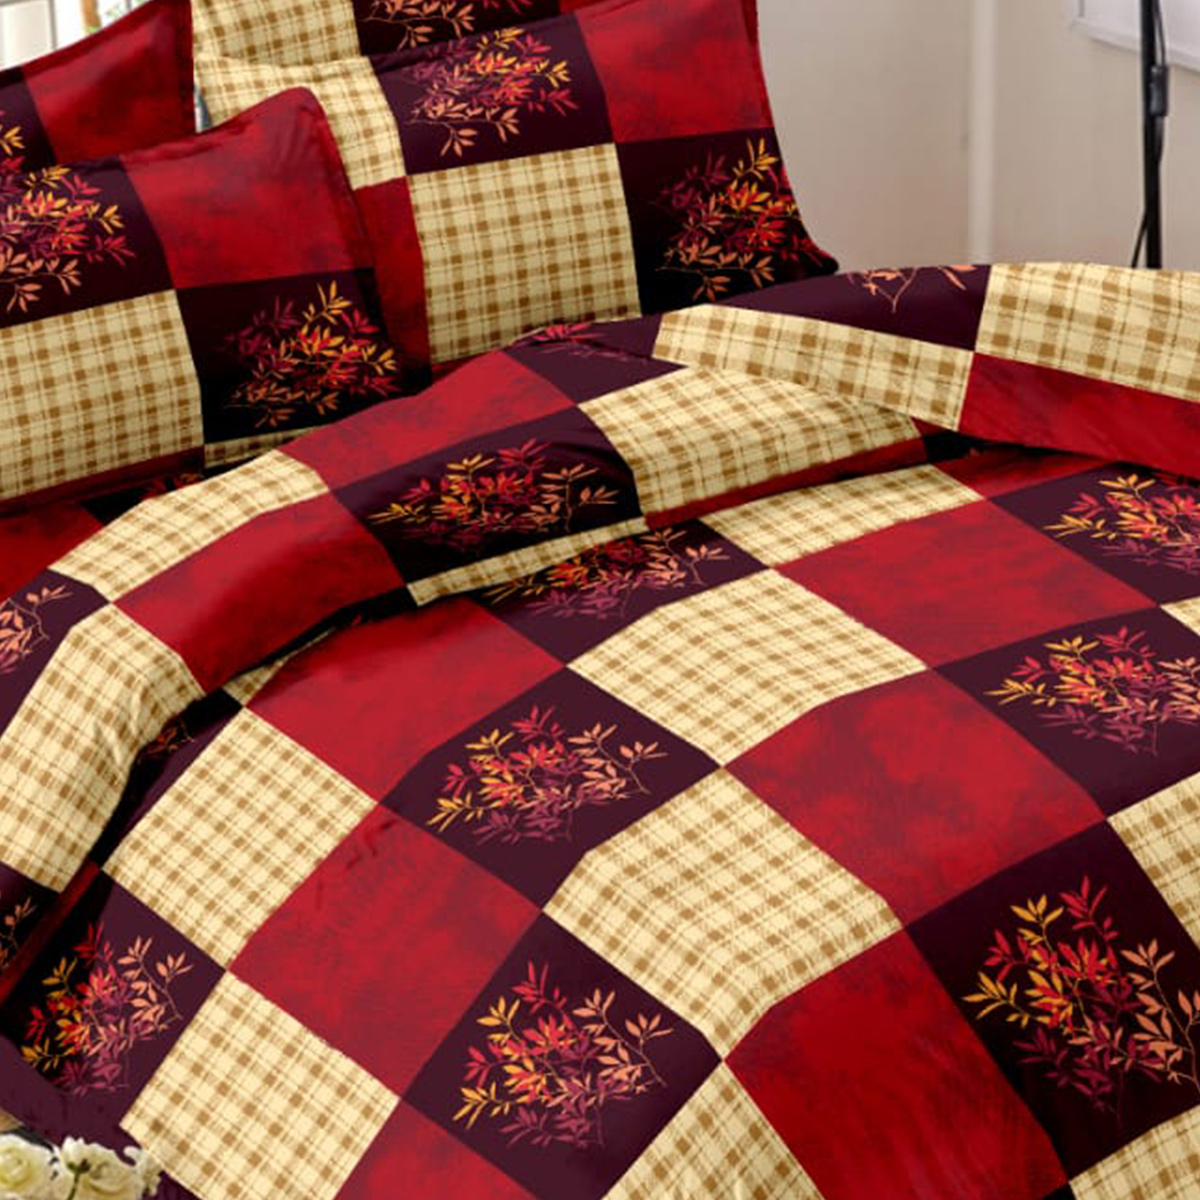 Exceptional Maroon-Cream Colored Floral Printed Cotton Double Bedsheet With Pillow Cover